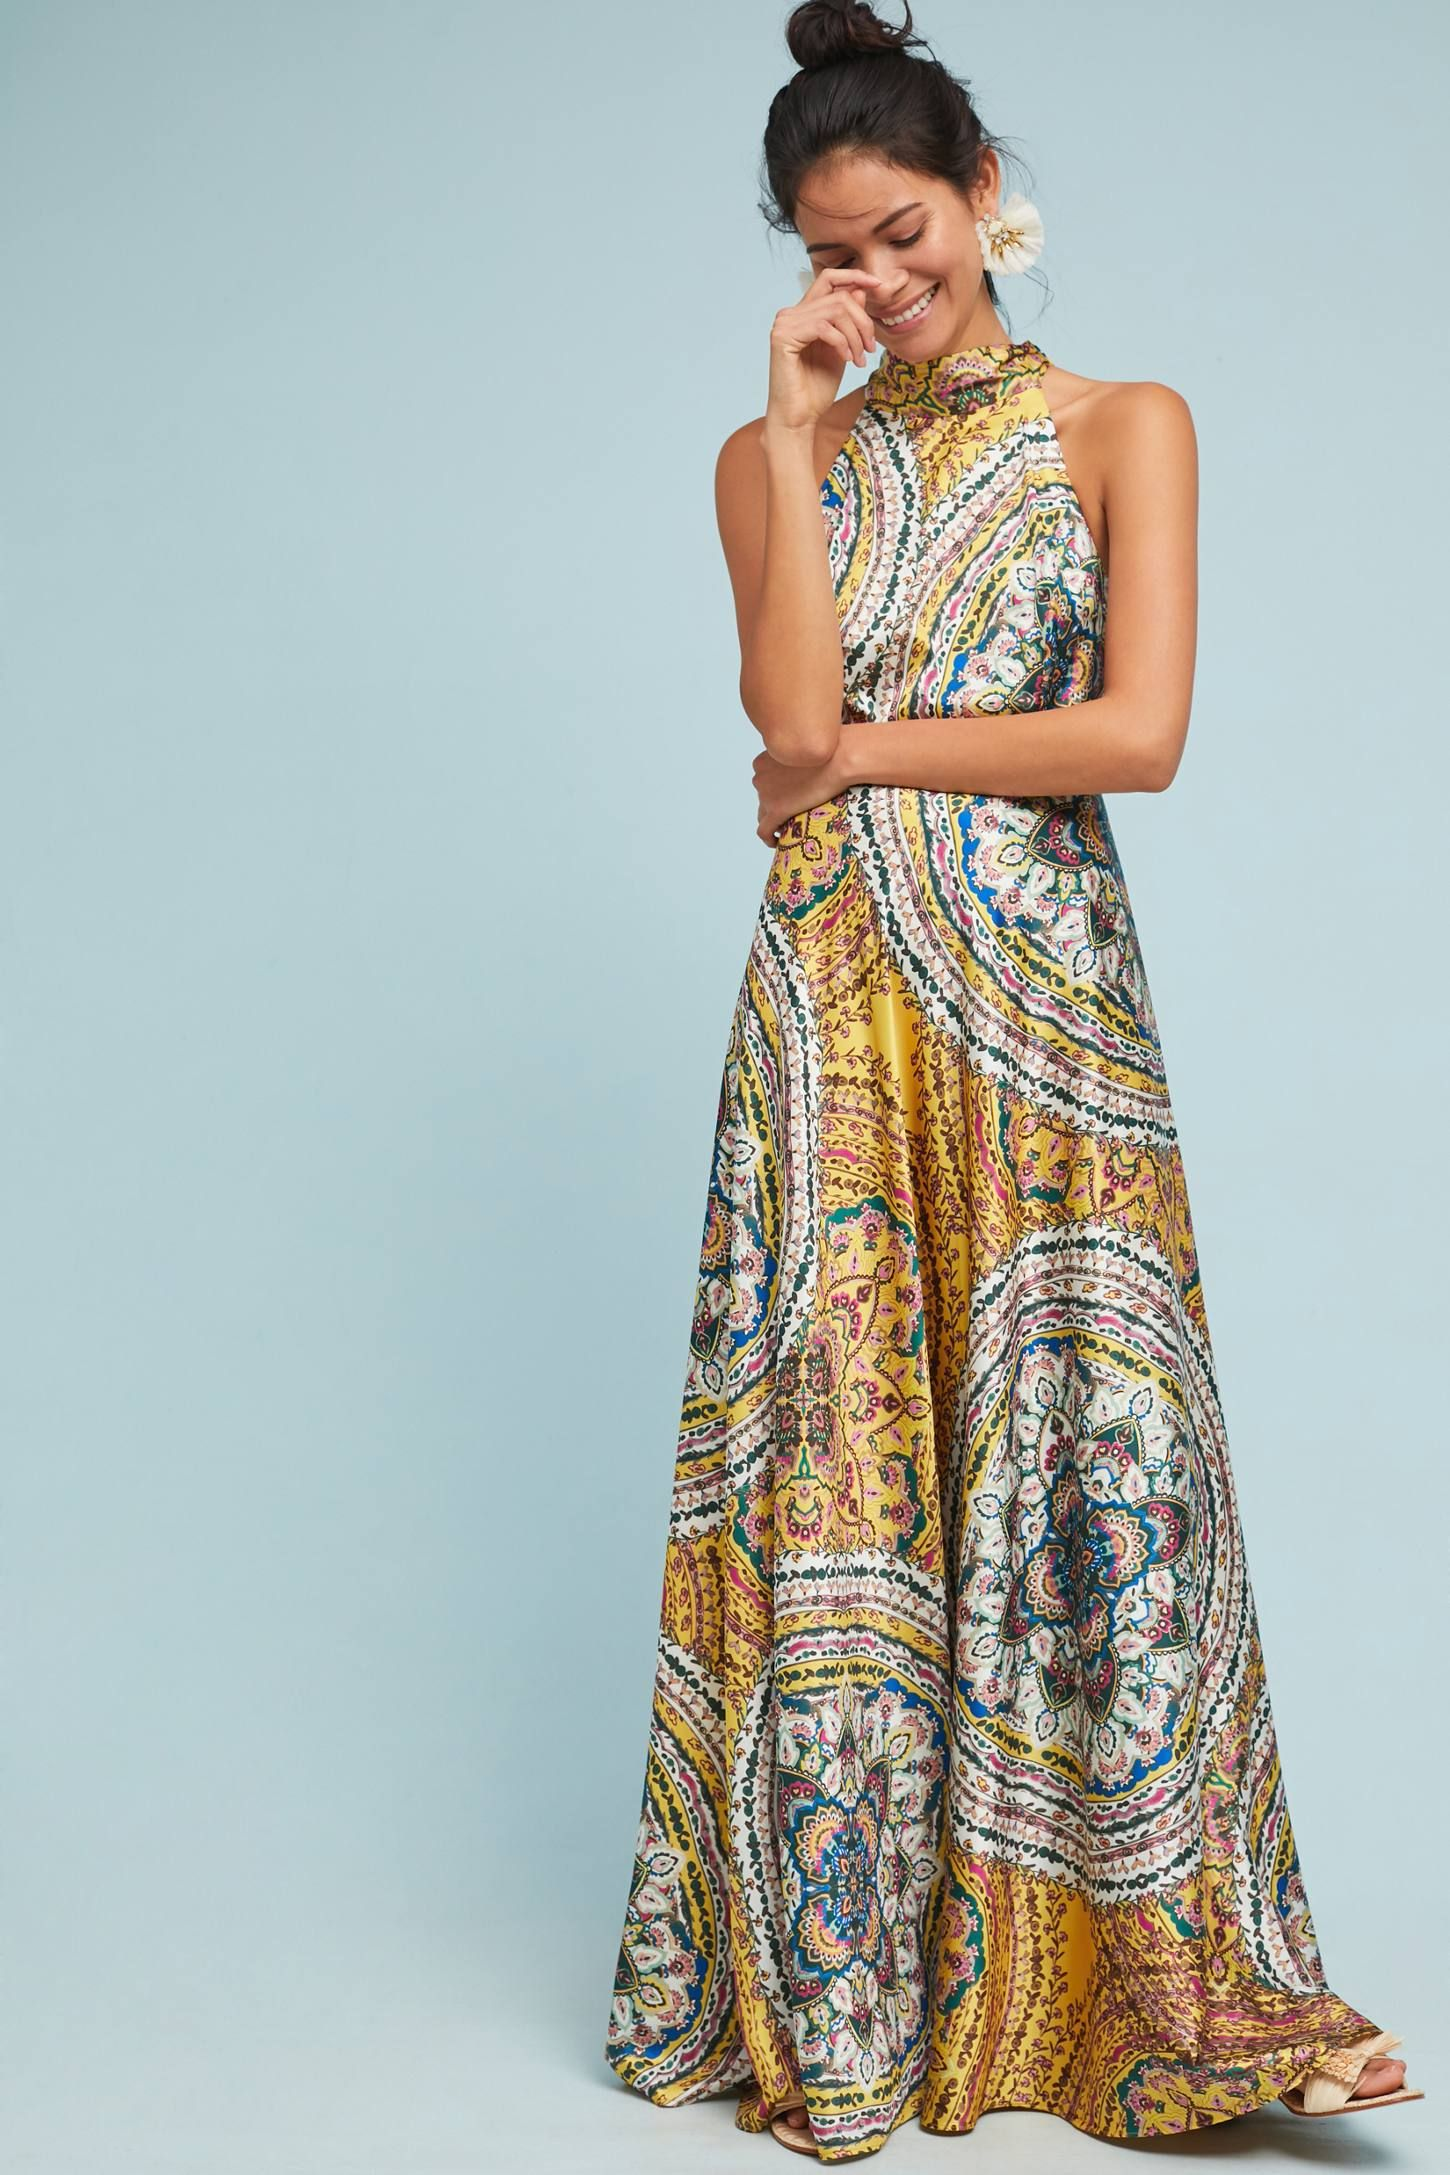 14 Most Unique Prom Dresses for 2018 - Cool Formal Dresses for Prom